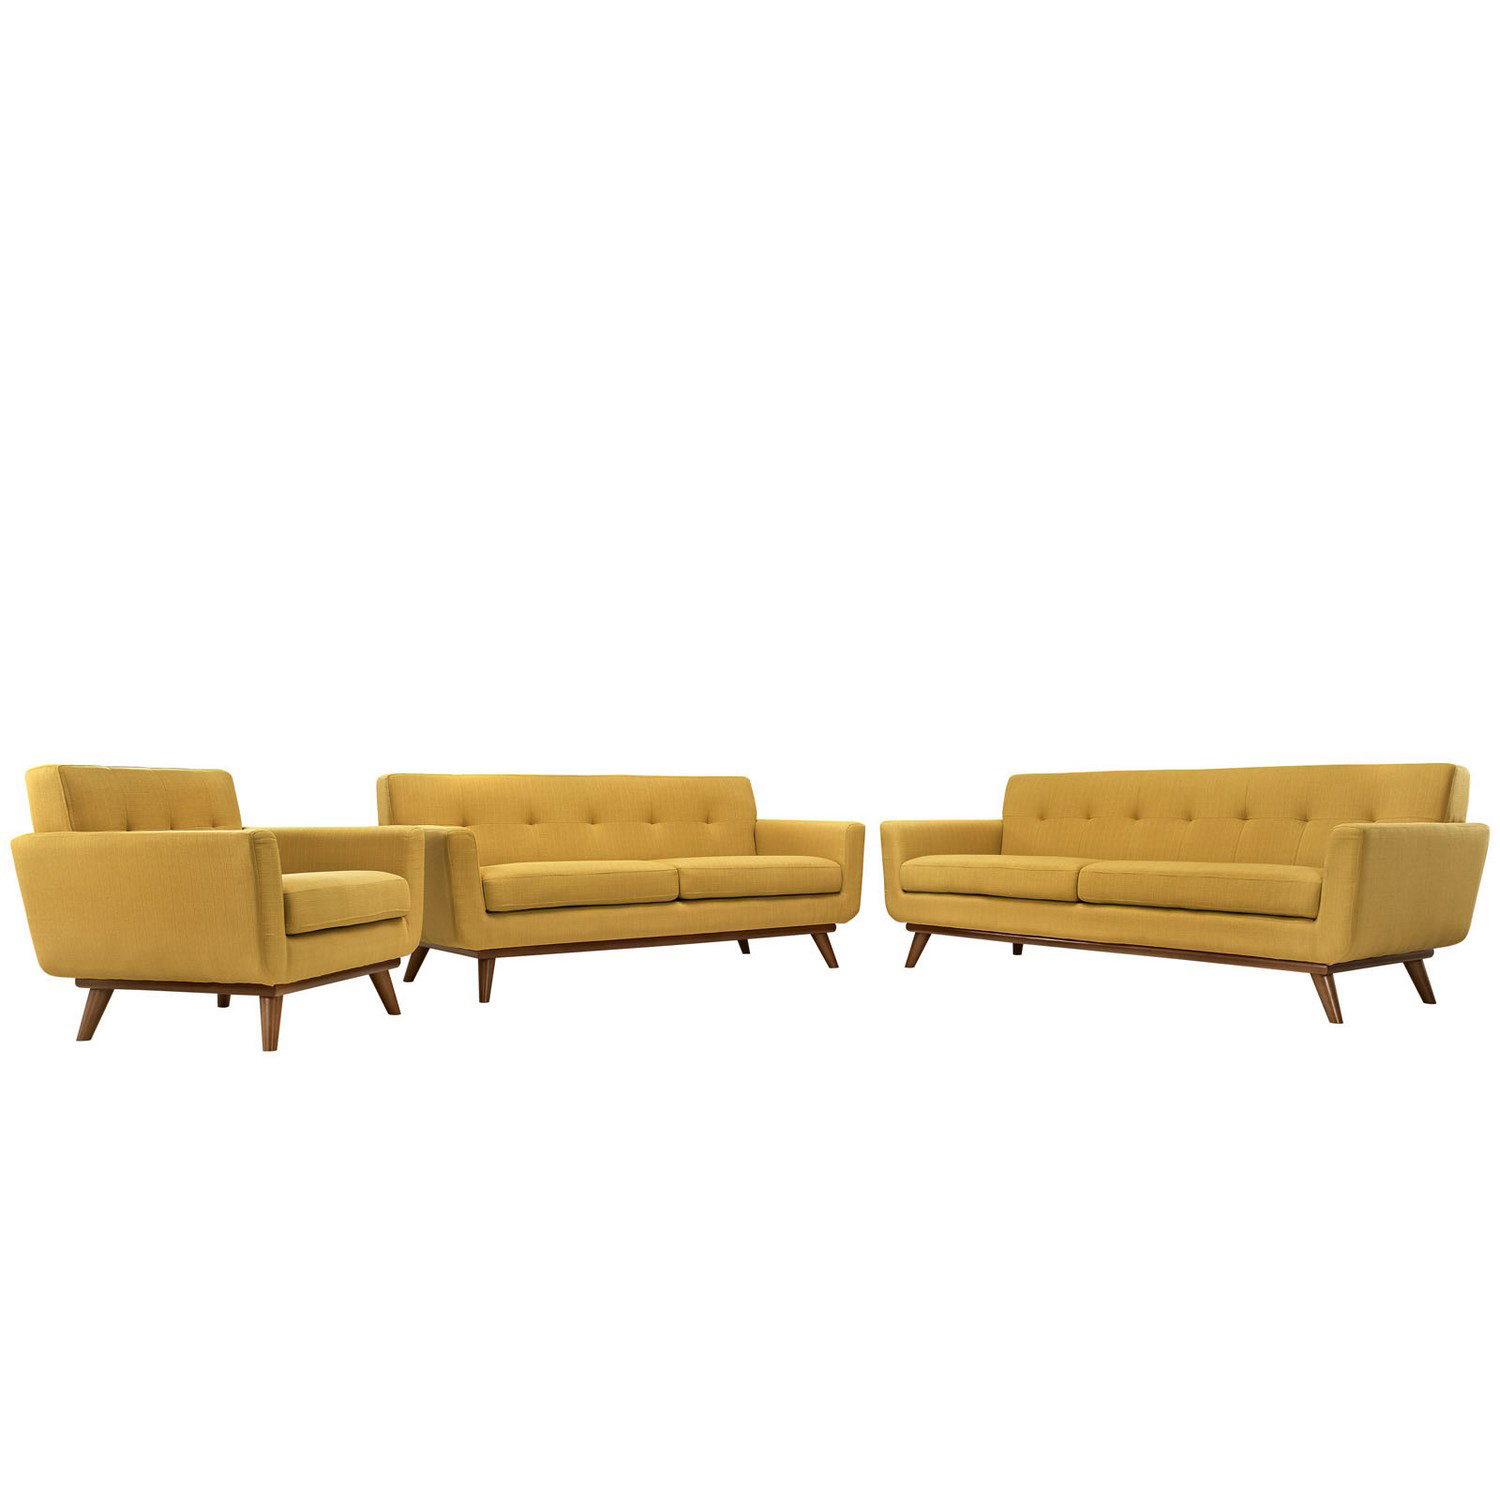 Modway Engage 3 PC Sofa Loveseat and Armchair Set - Citrus